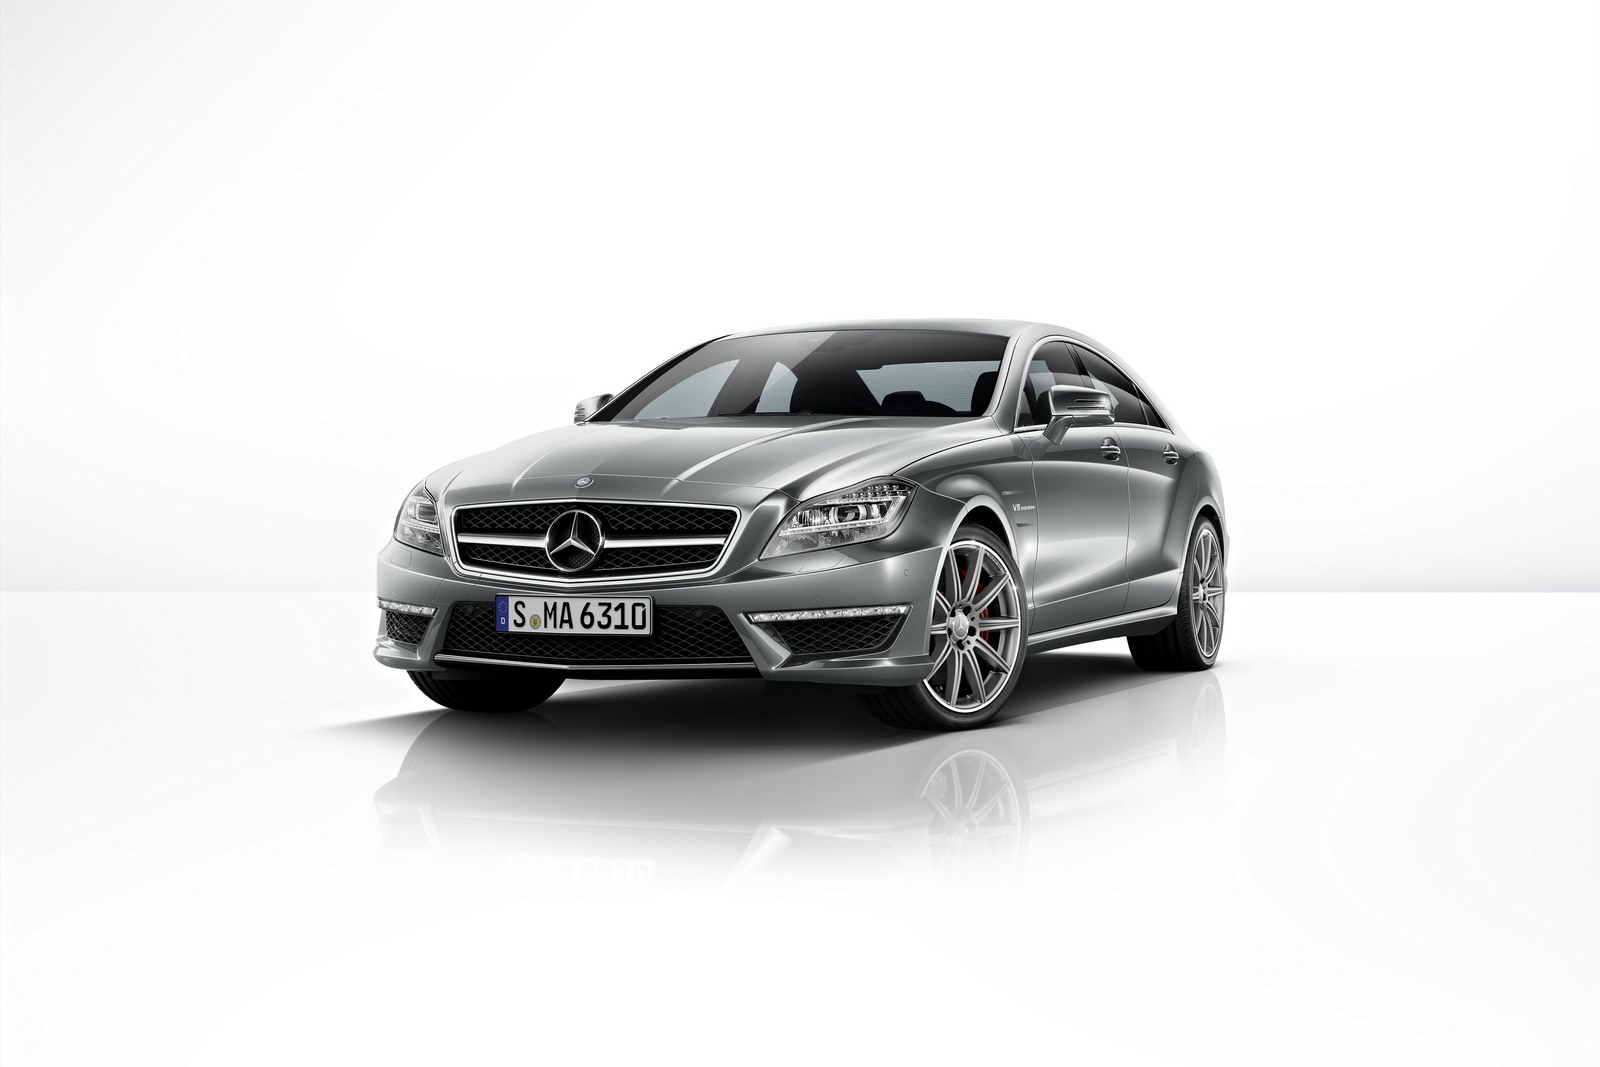 2014 mercedes cls 63 amg gets more power 4matic for Mercedes benz 4matic meaning